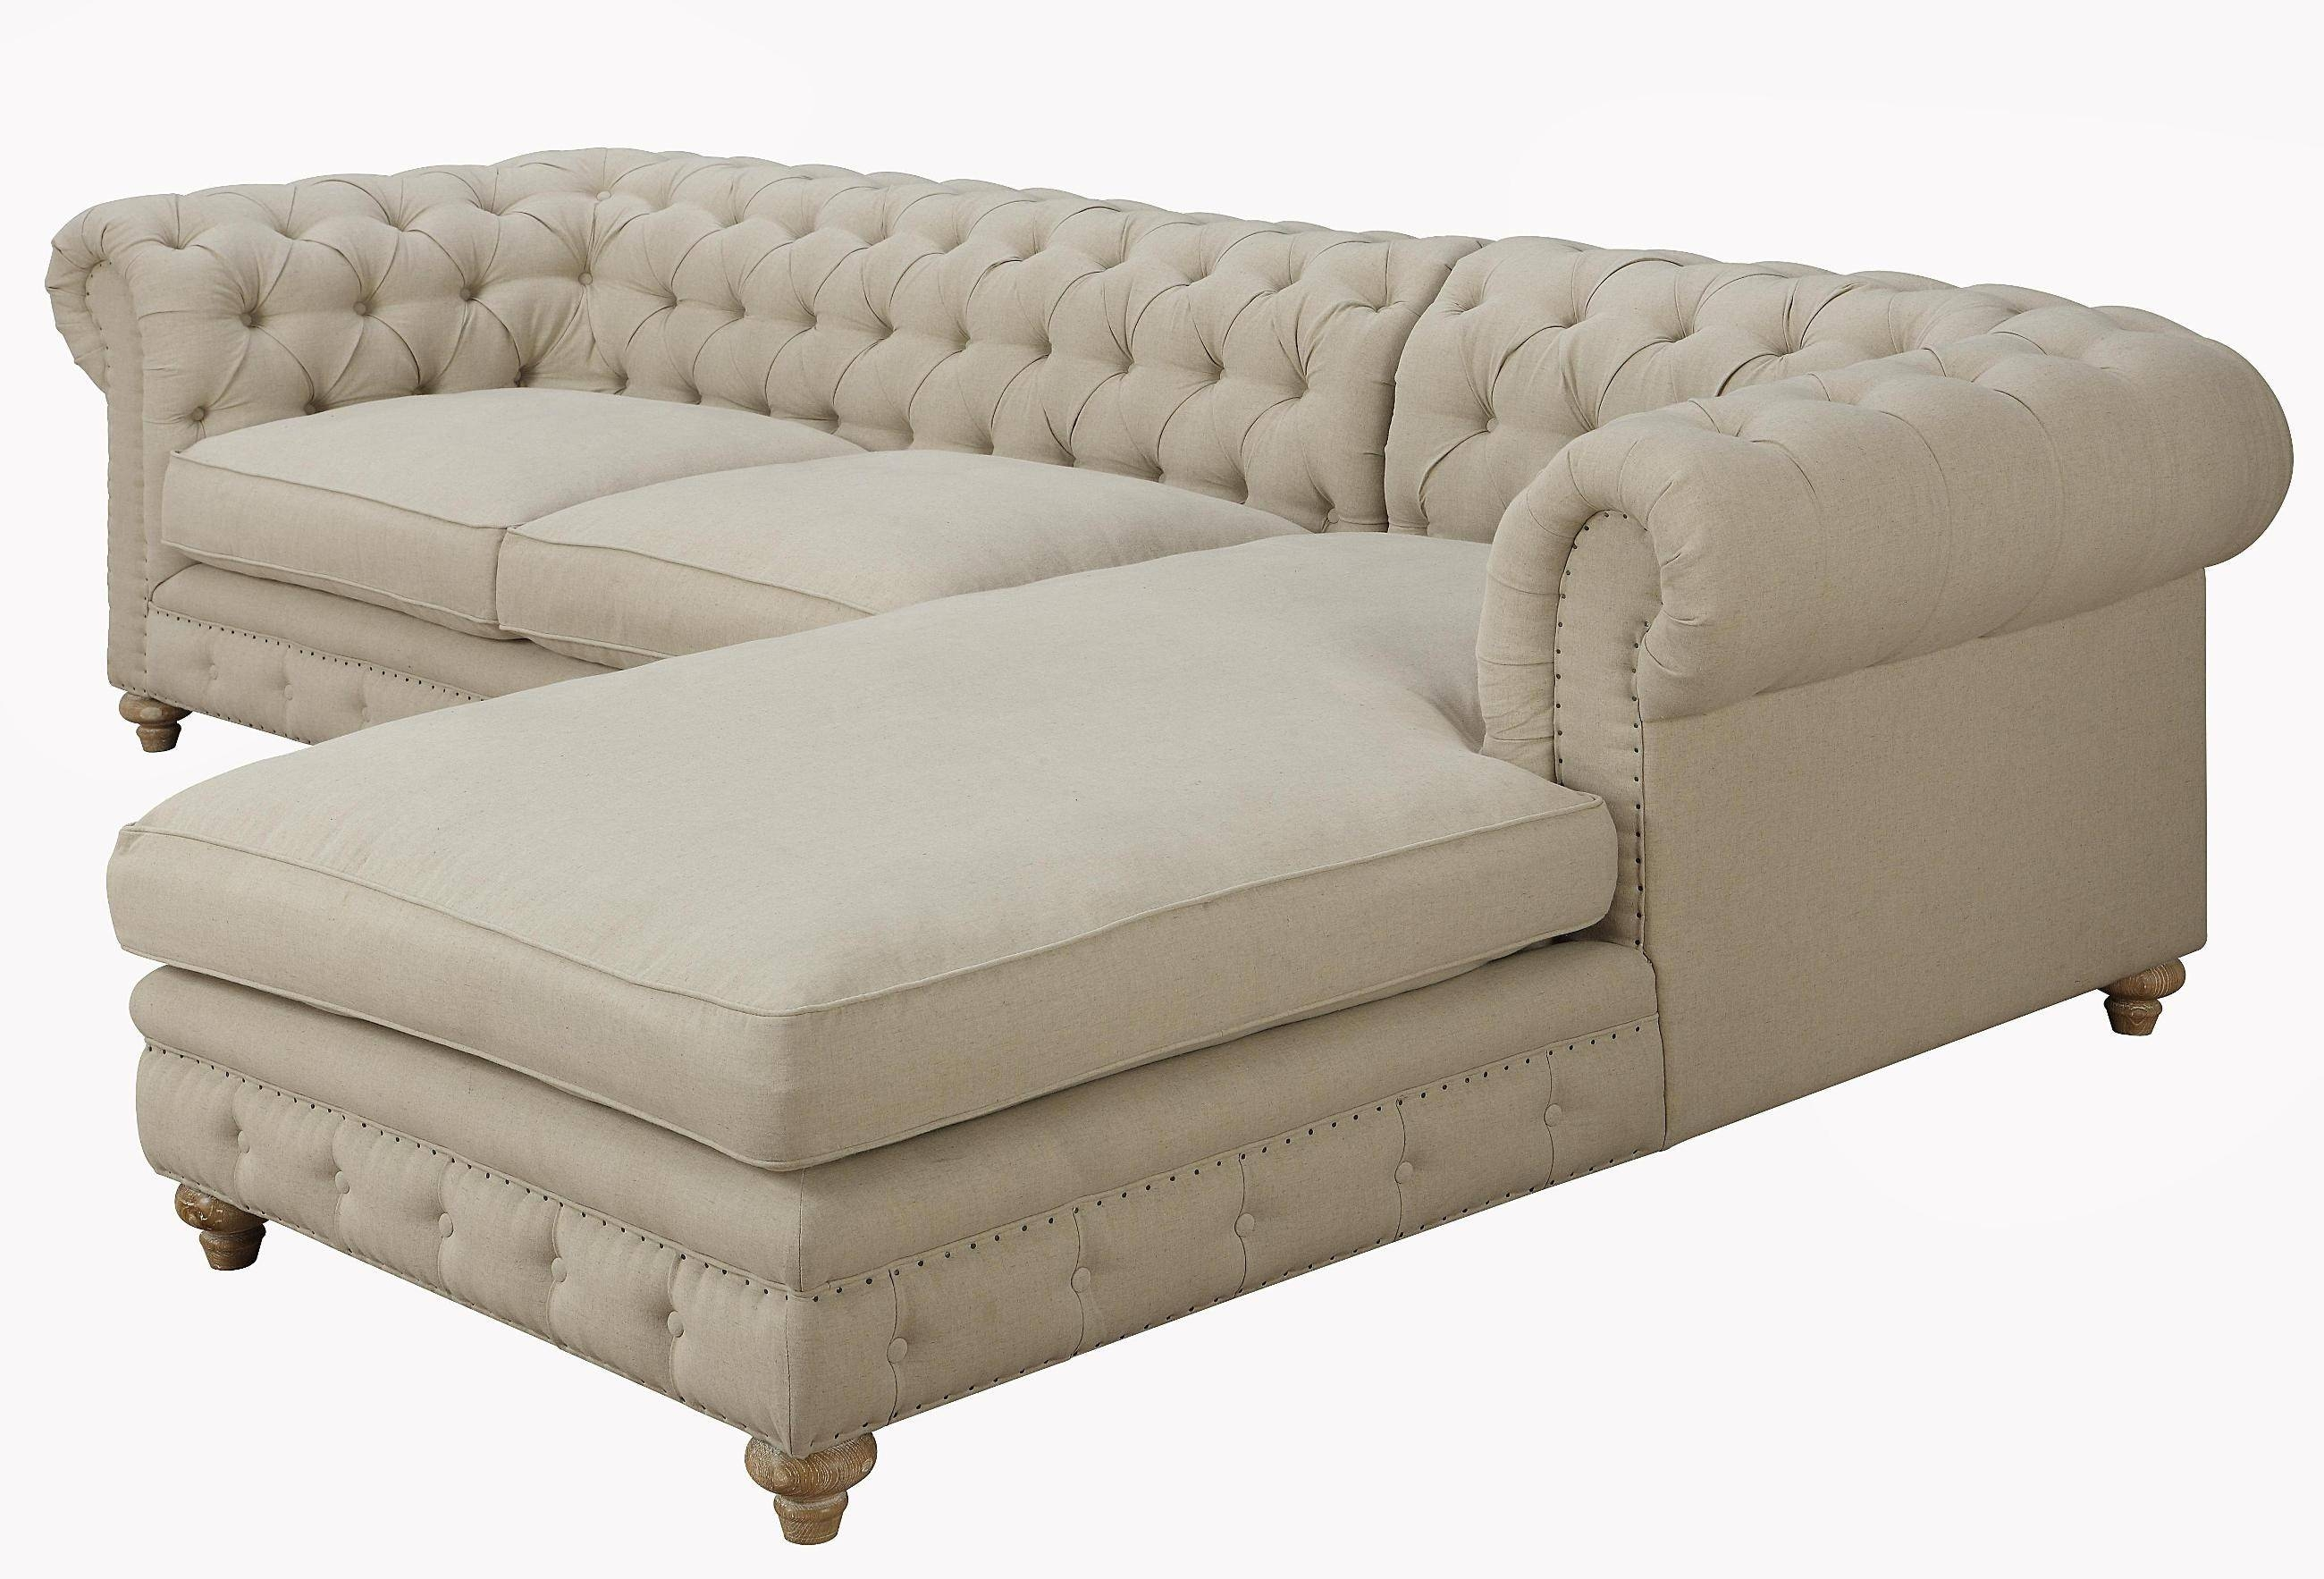 leather vs fabric sofa india affordable awesome tufted sectional chaise sofas